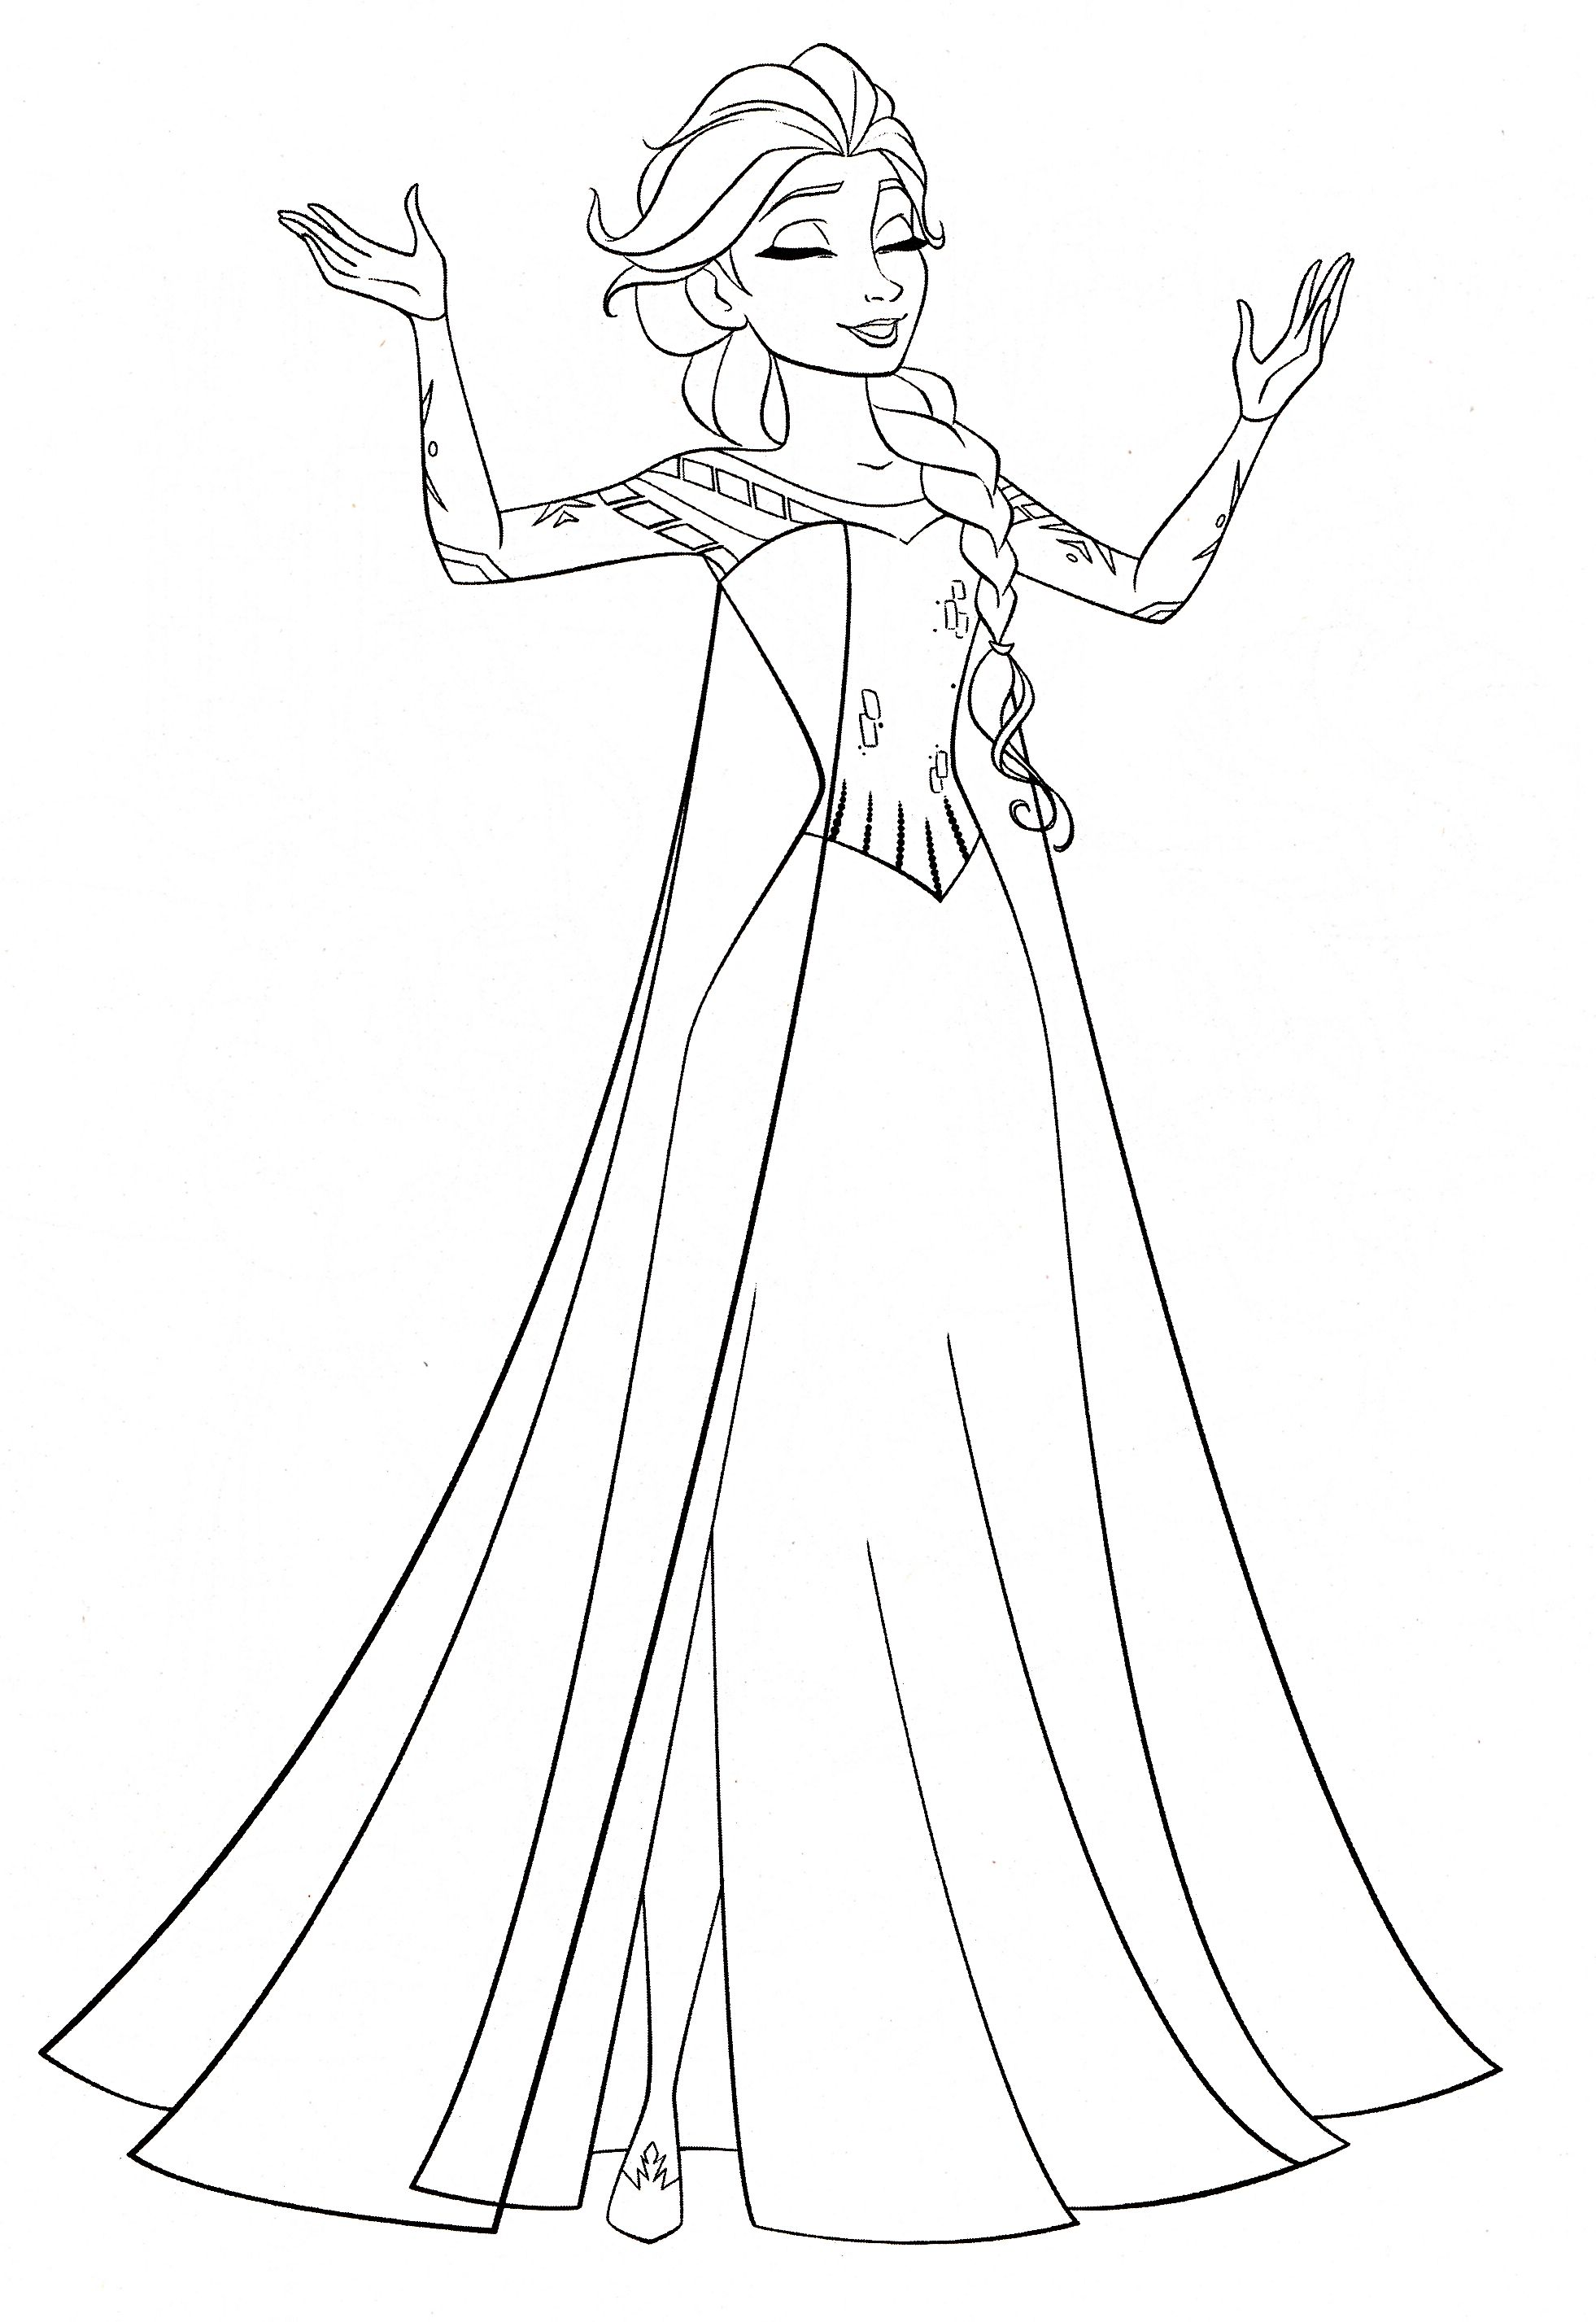 Walt Disney Characters Photo Walt Disney Coloring Pages Queen Elsa Disney Princess Coloring Pages Frozen Coloring Pages Elsa Coloring Pages